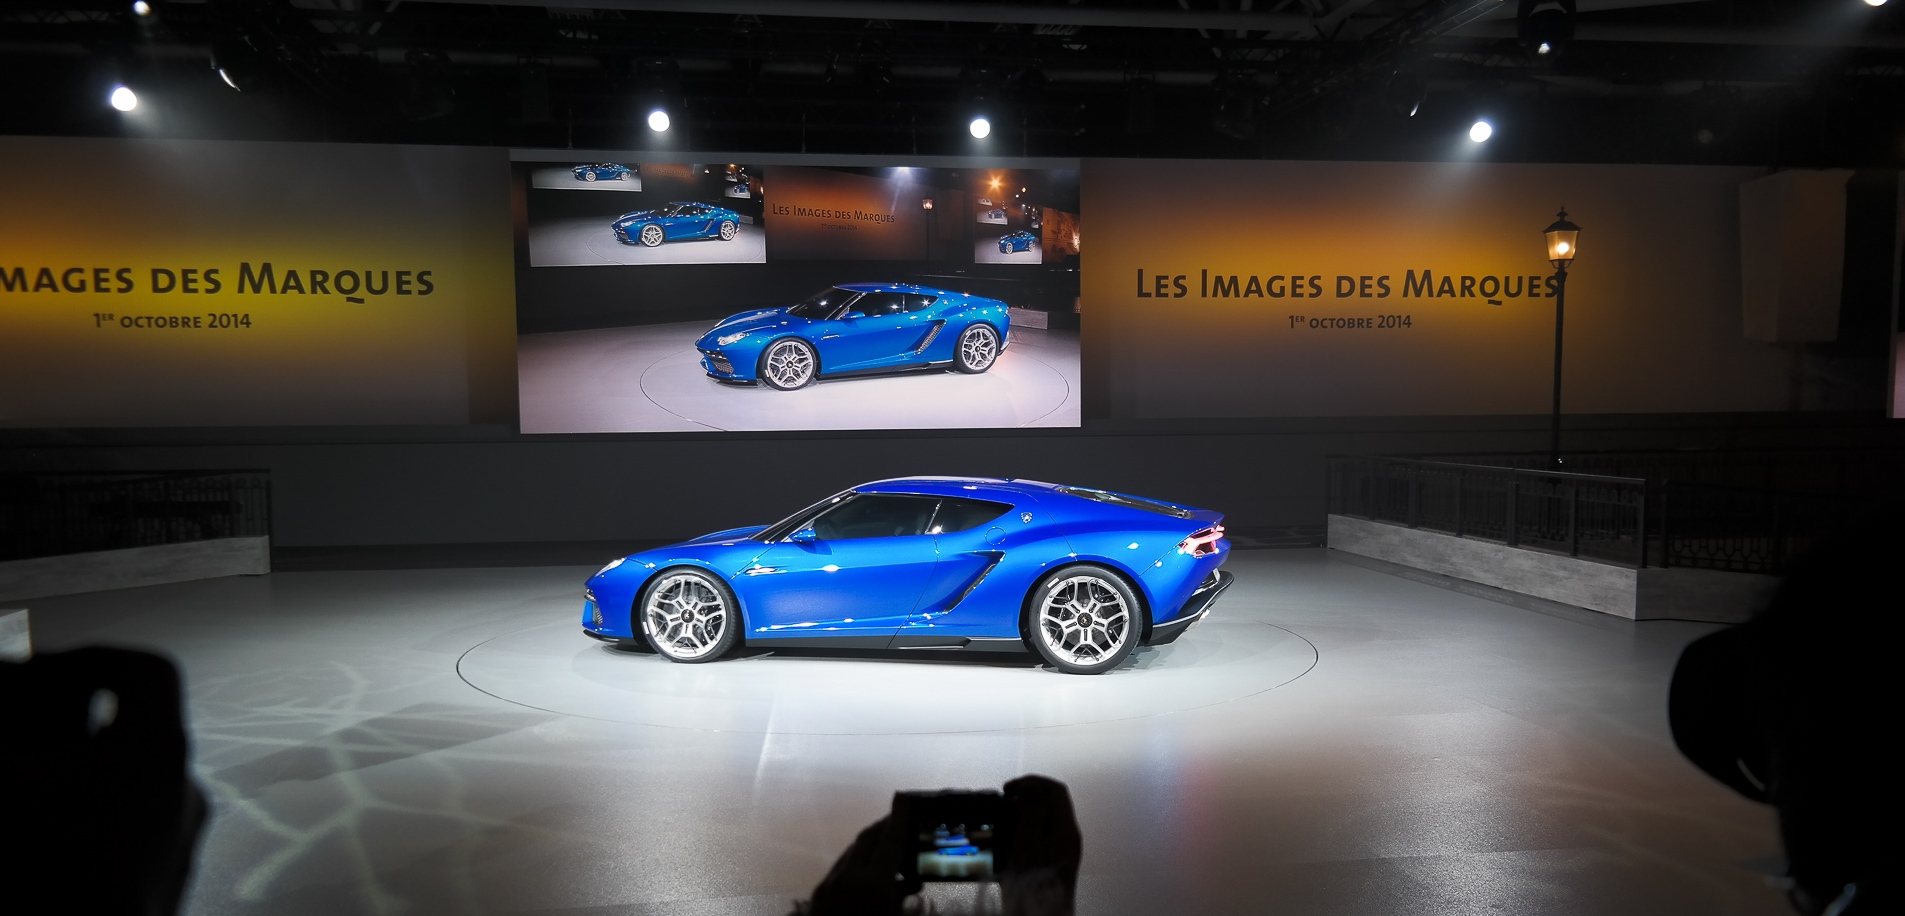 lamborghini-asterion-lp-910-4-looks-like-an-estoque-evora-mashup-live-photos_2